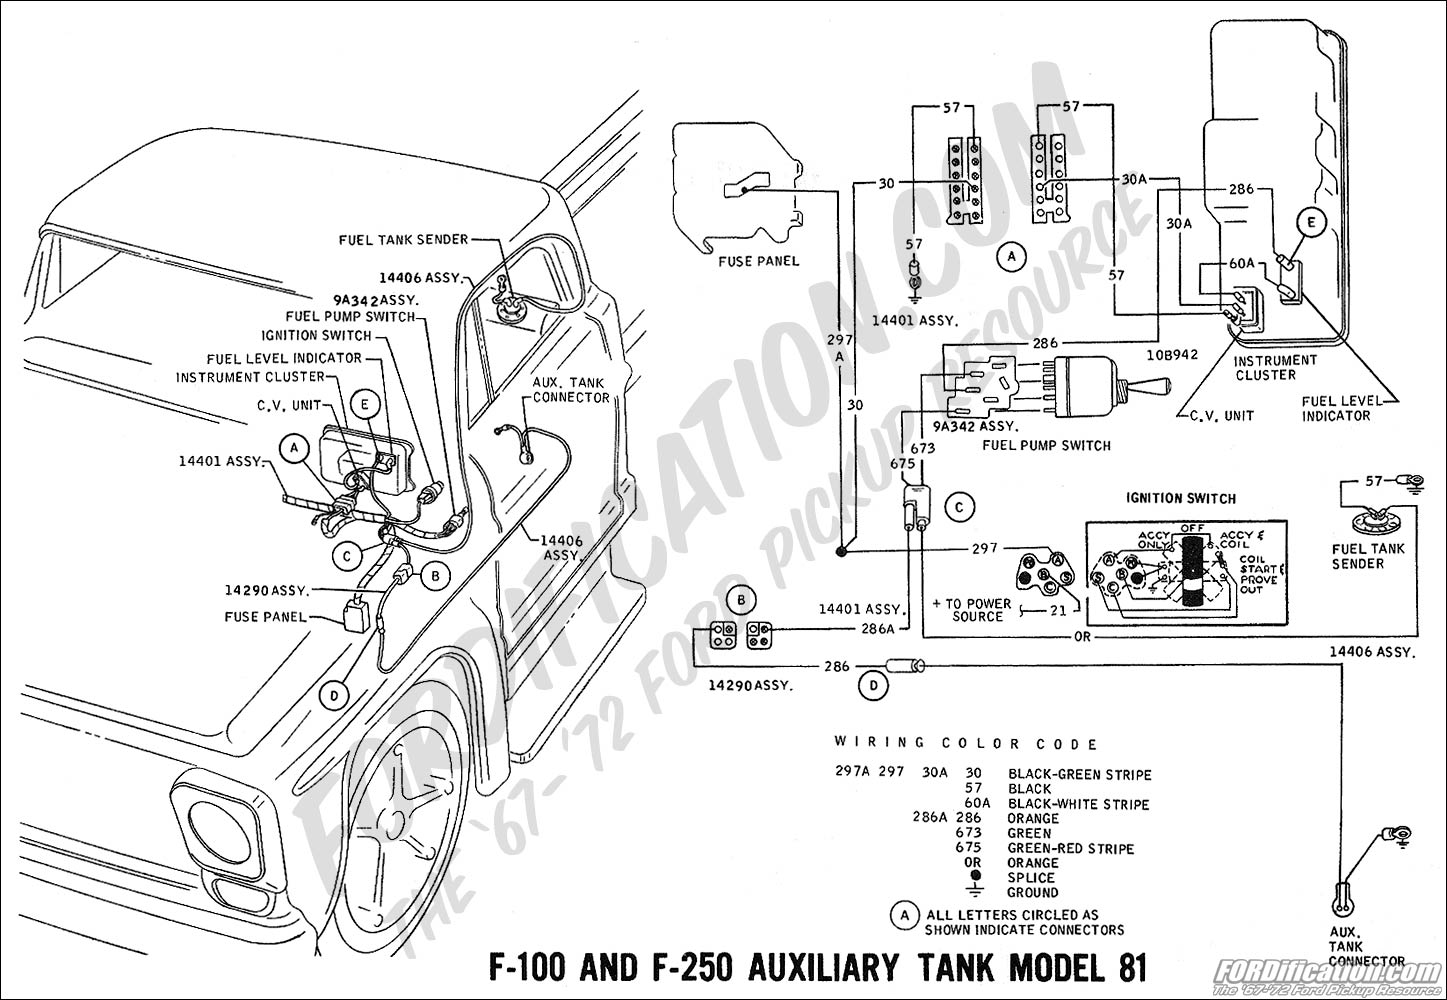 wiring_69aux fuel ford truck technical drawings and schematics section h wiring Ford F-250 Wiring Diagram at bayanpartner.co